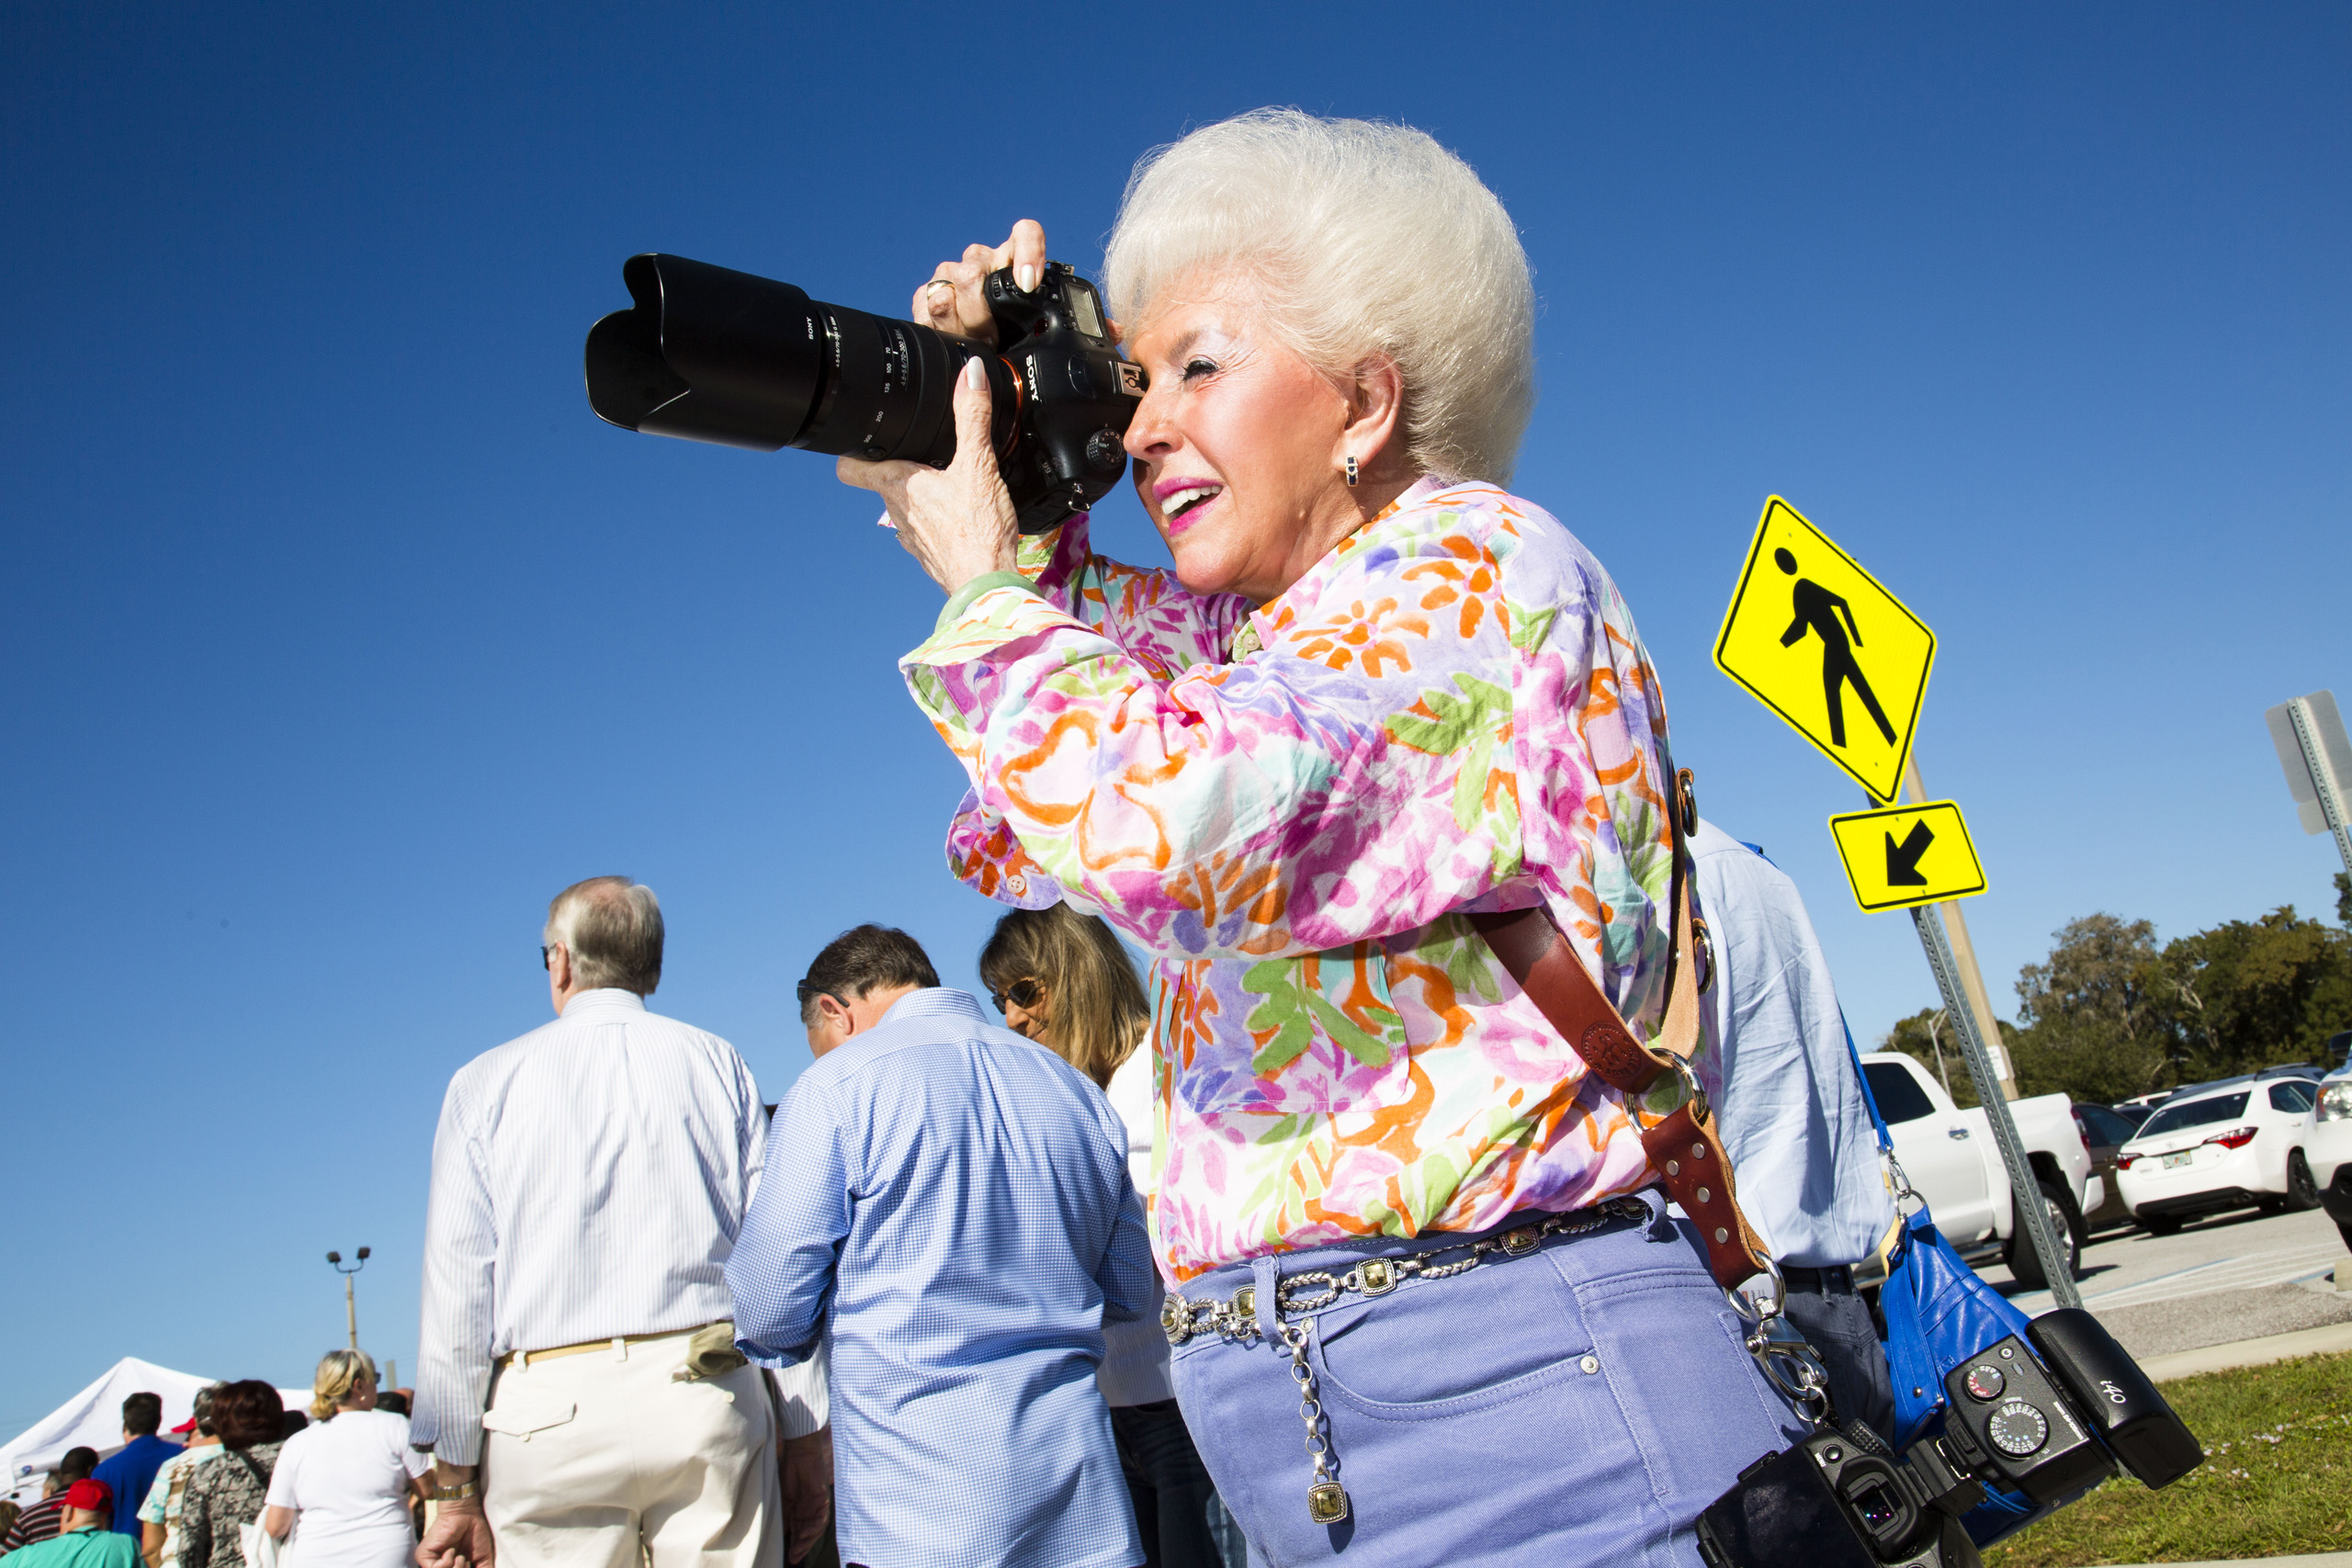 Supporter of Republican presidential candidate Donald Trump photographs at a Donald Trump rally in Sarasota, Fla. Nov. 28, 2015.